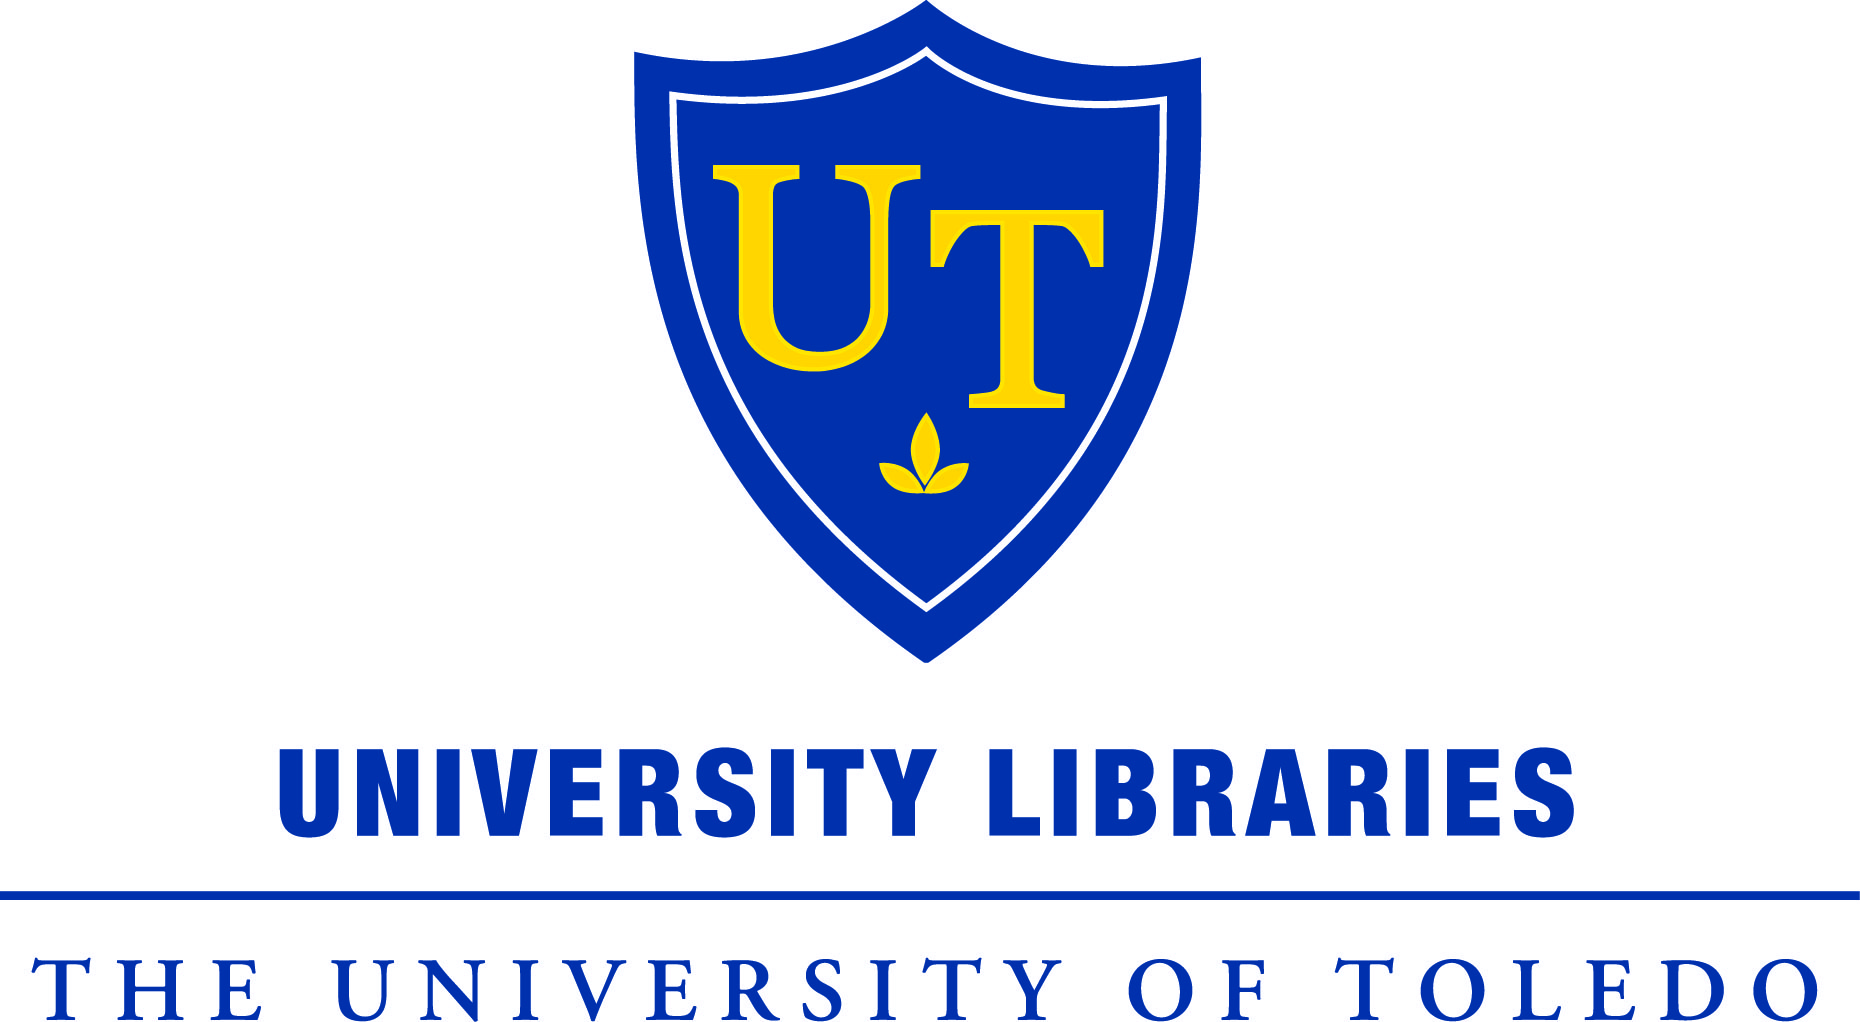 University of Toledo Libraries